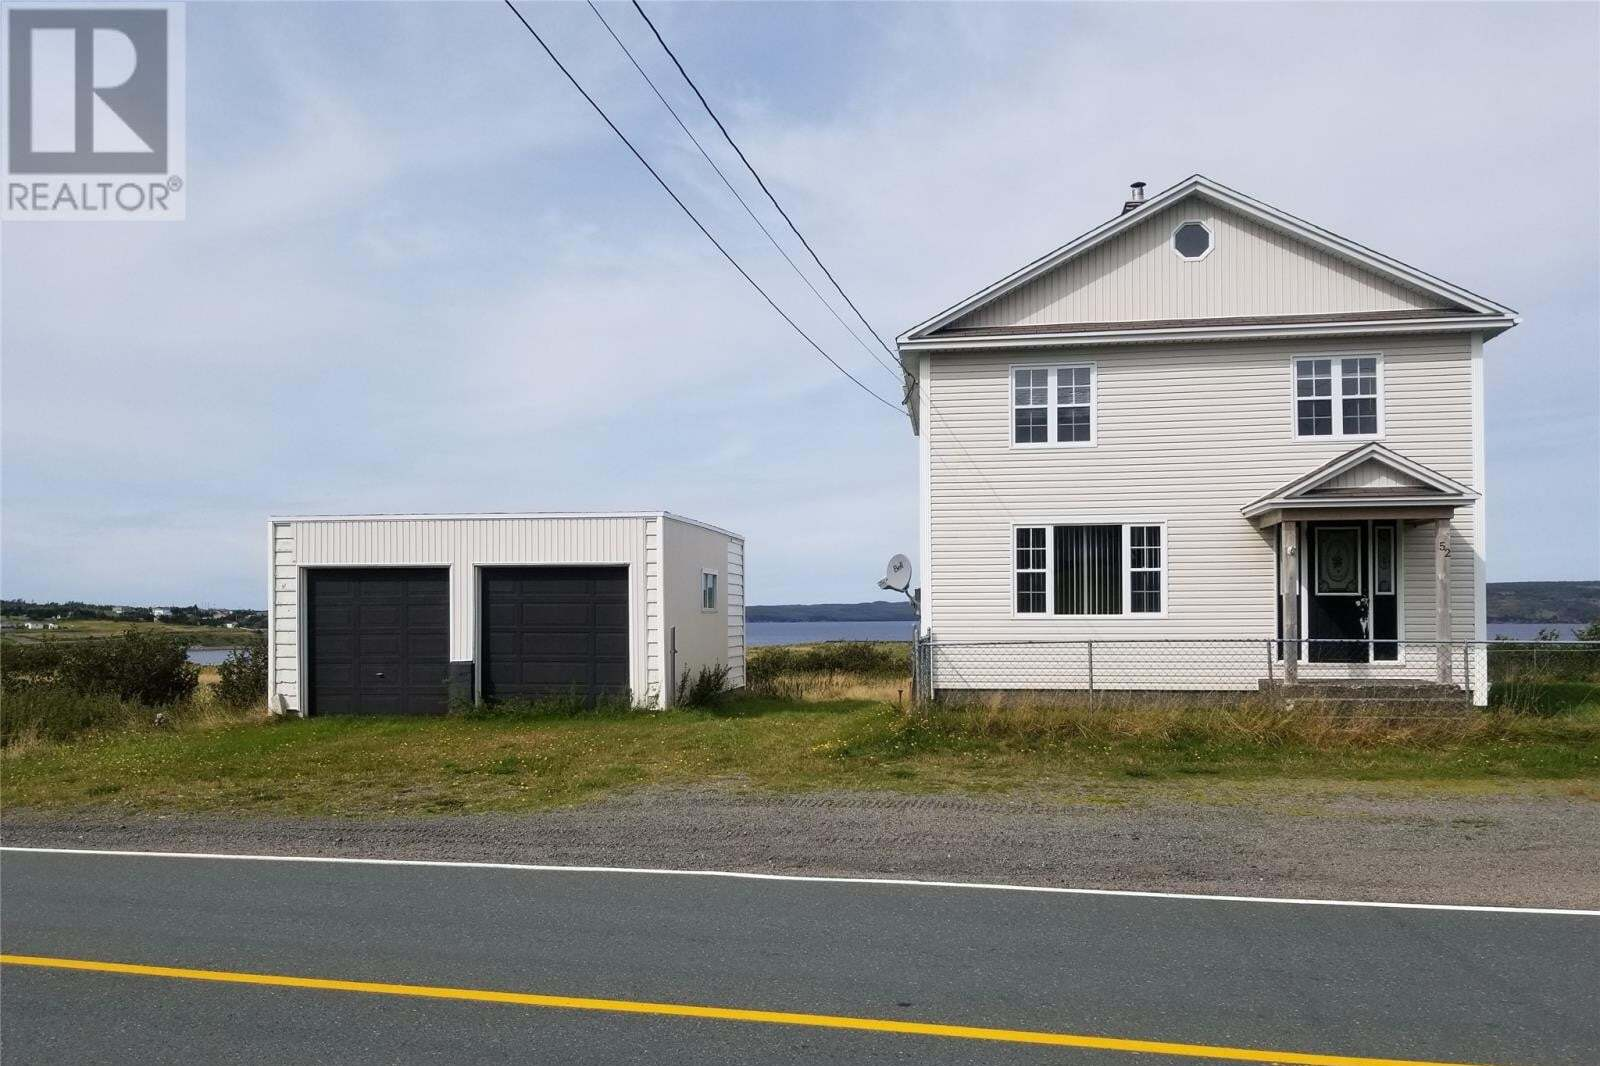 House for sale at 52 Main Rd St. Marys Newfoundland - MLS: 1221430